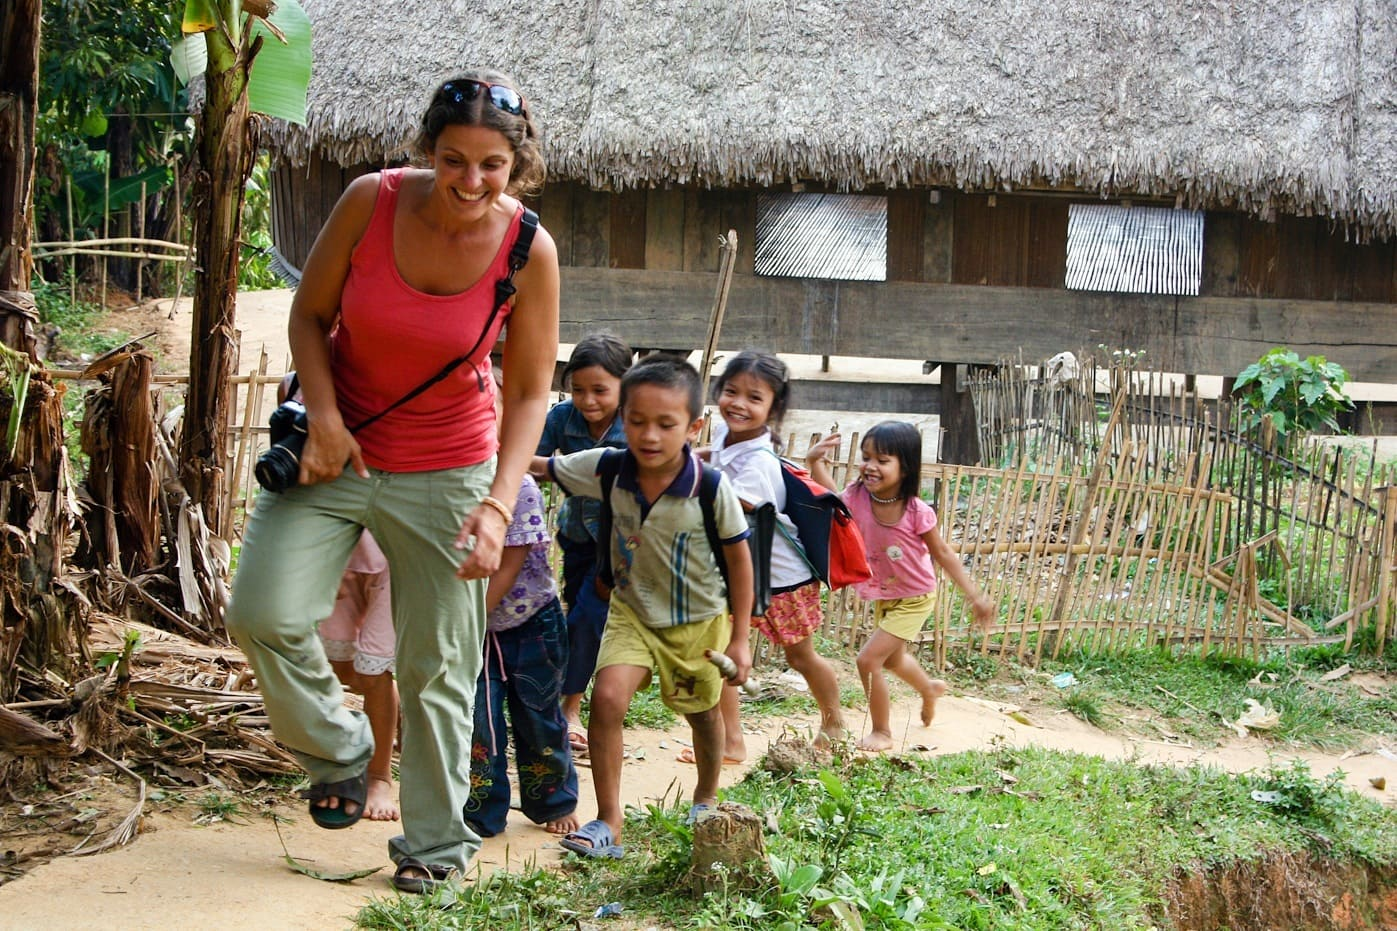 walking through the hills of vietnam with children following